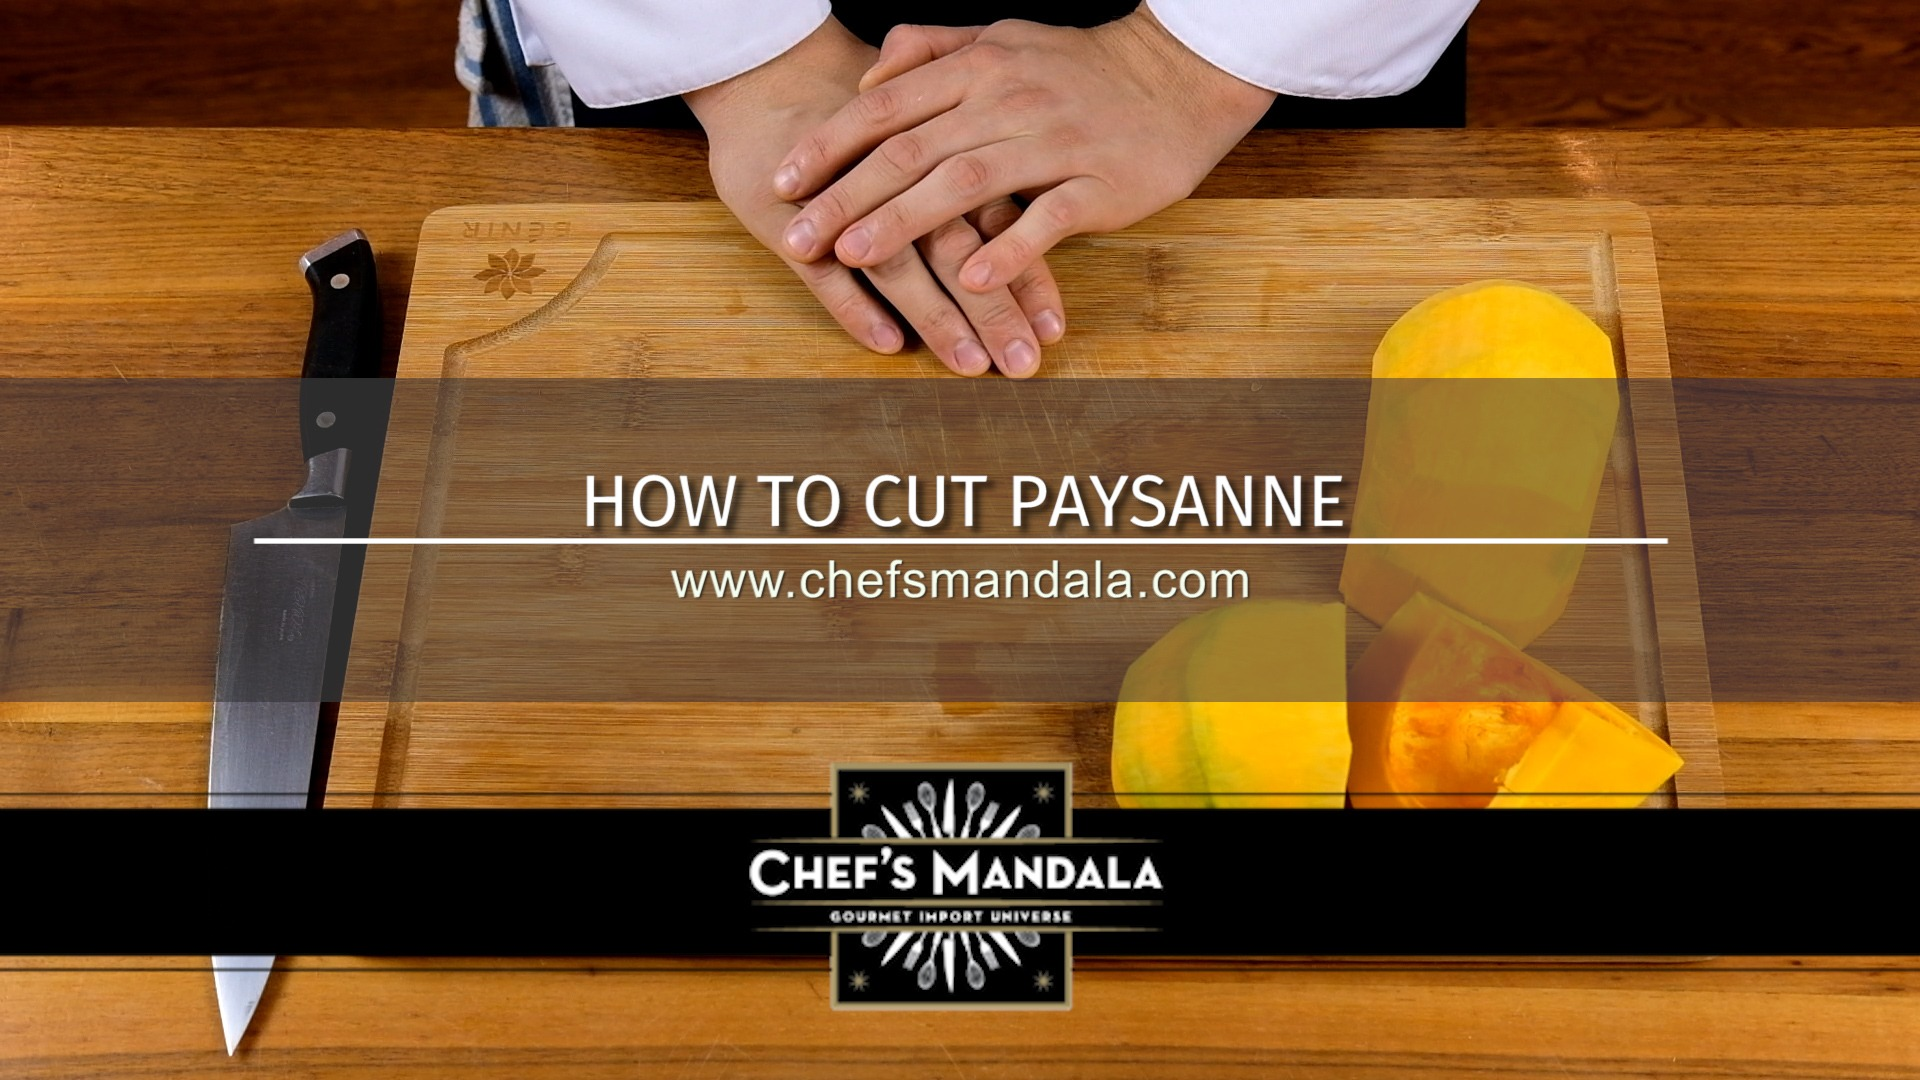 HOW TO CUT PAYSANNE